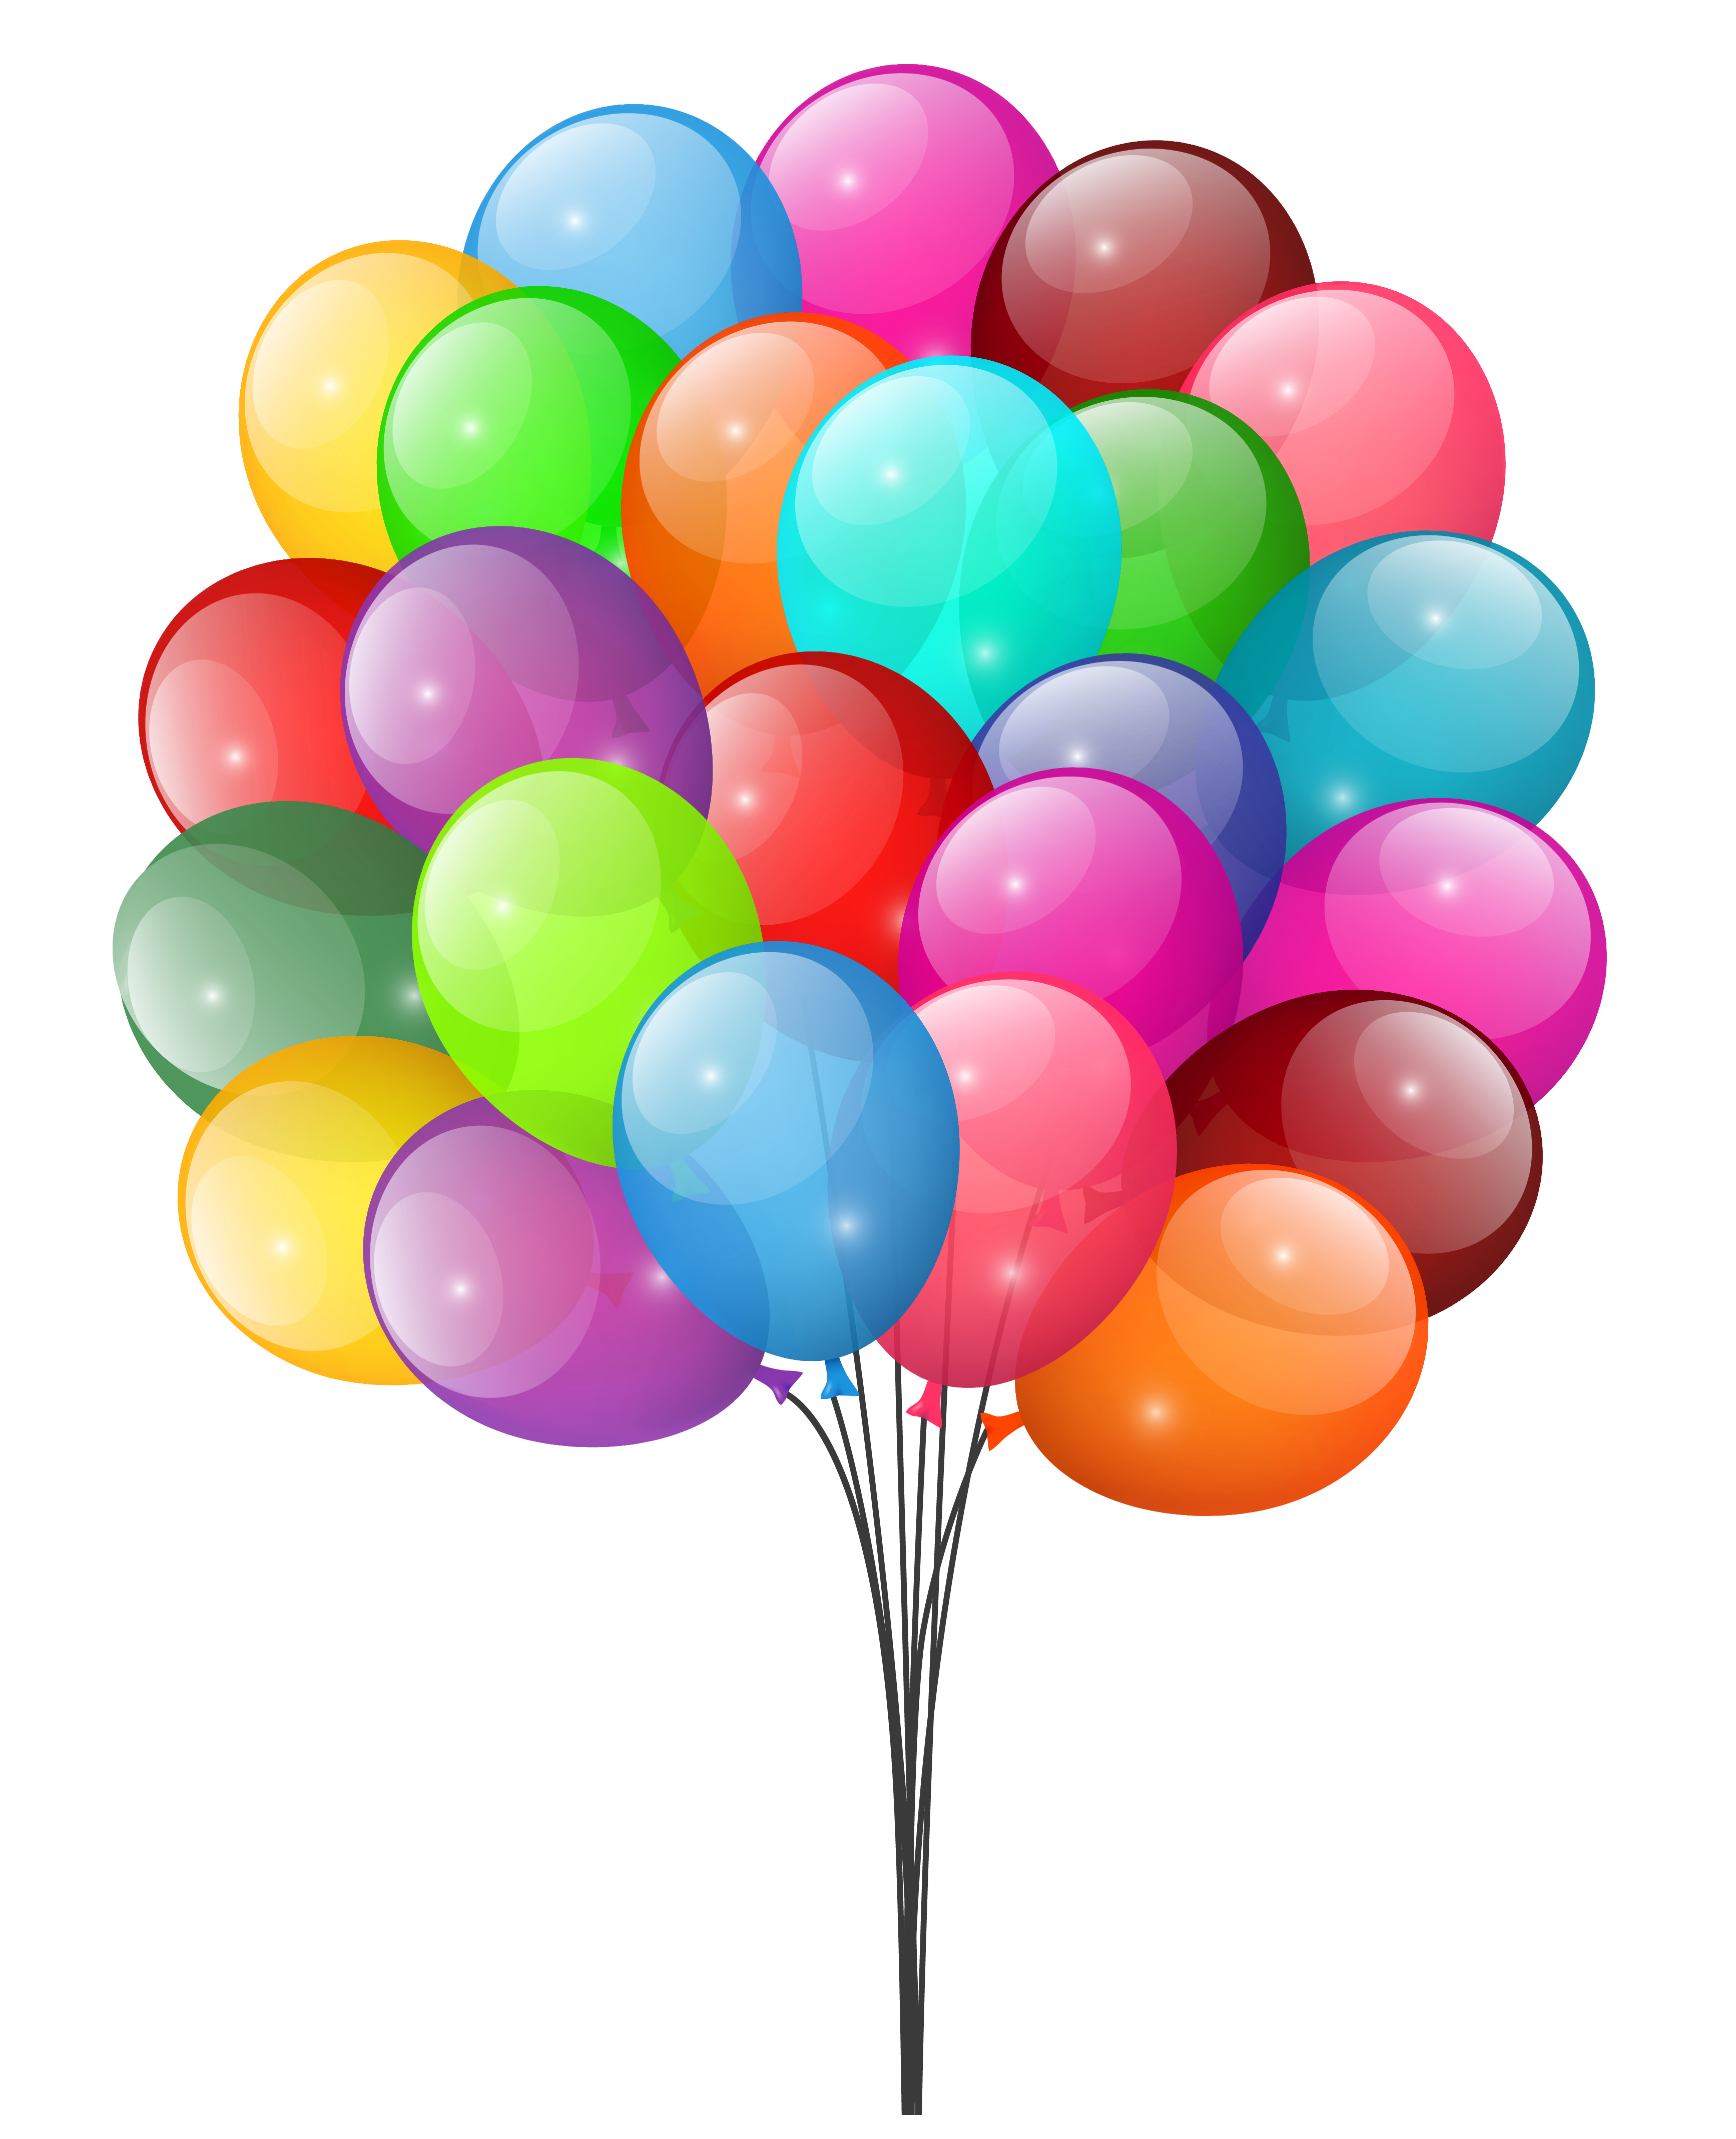 Png image gallery yopriceville. Balloons clipart ballon